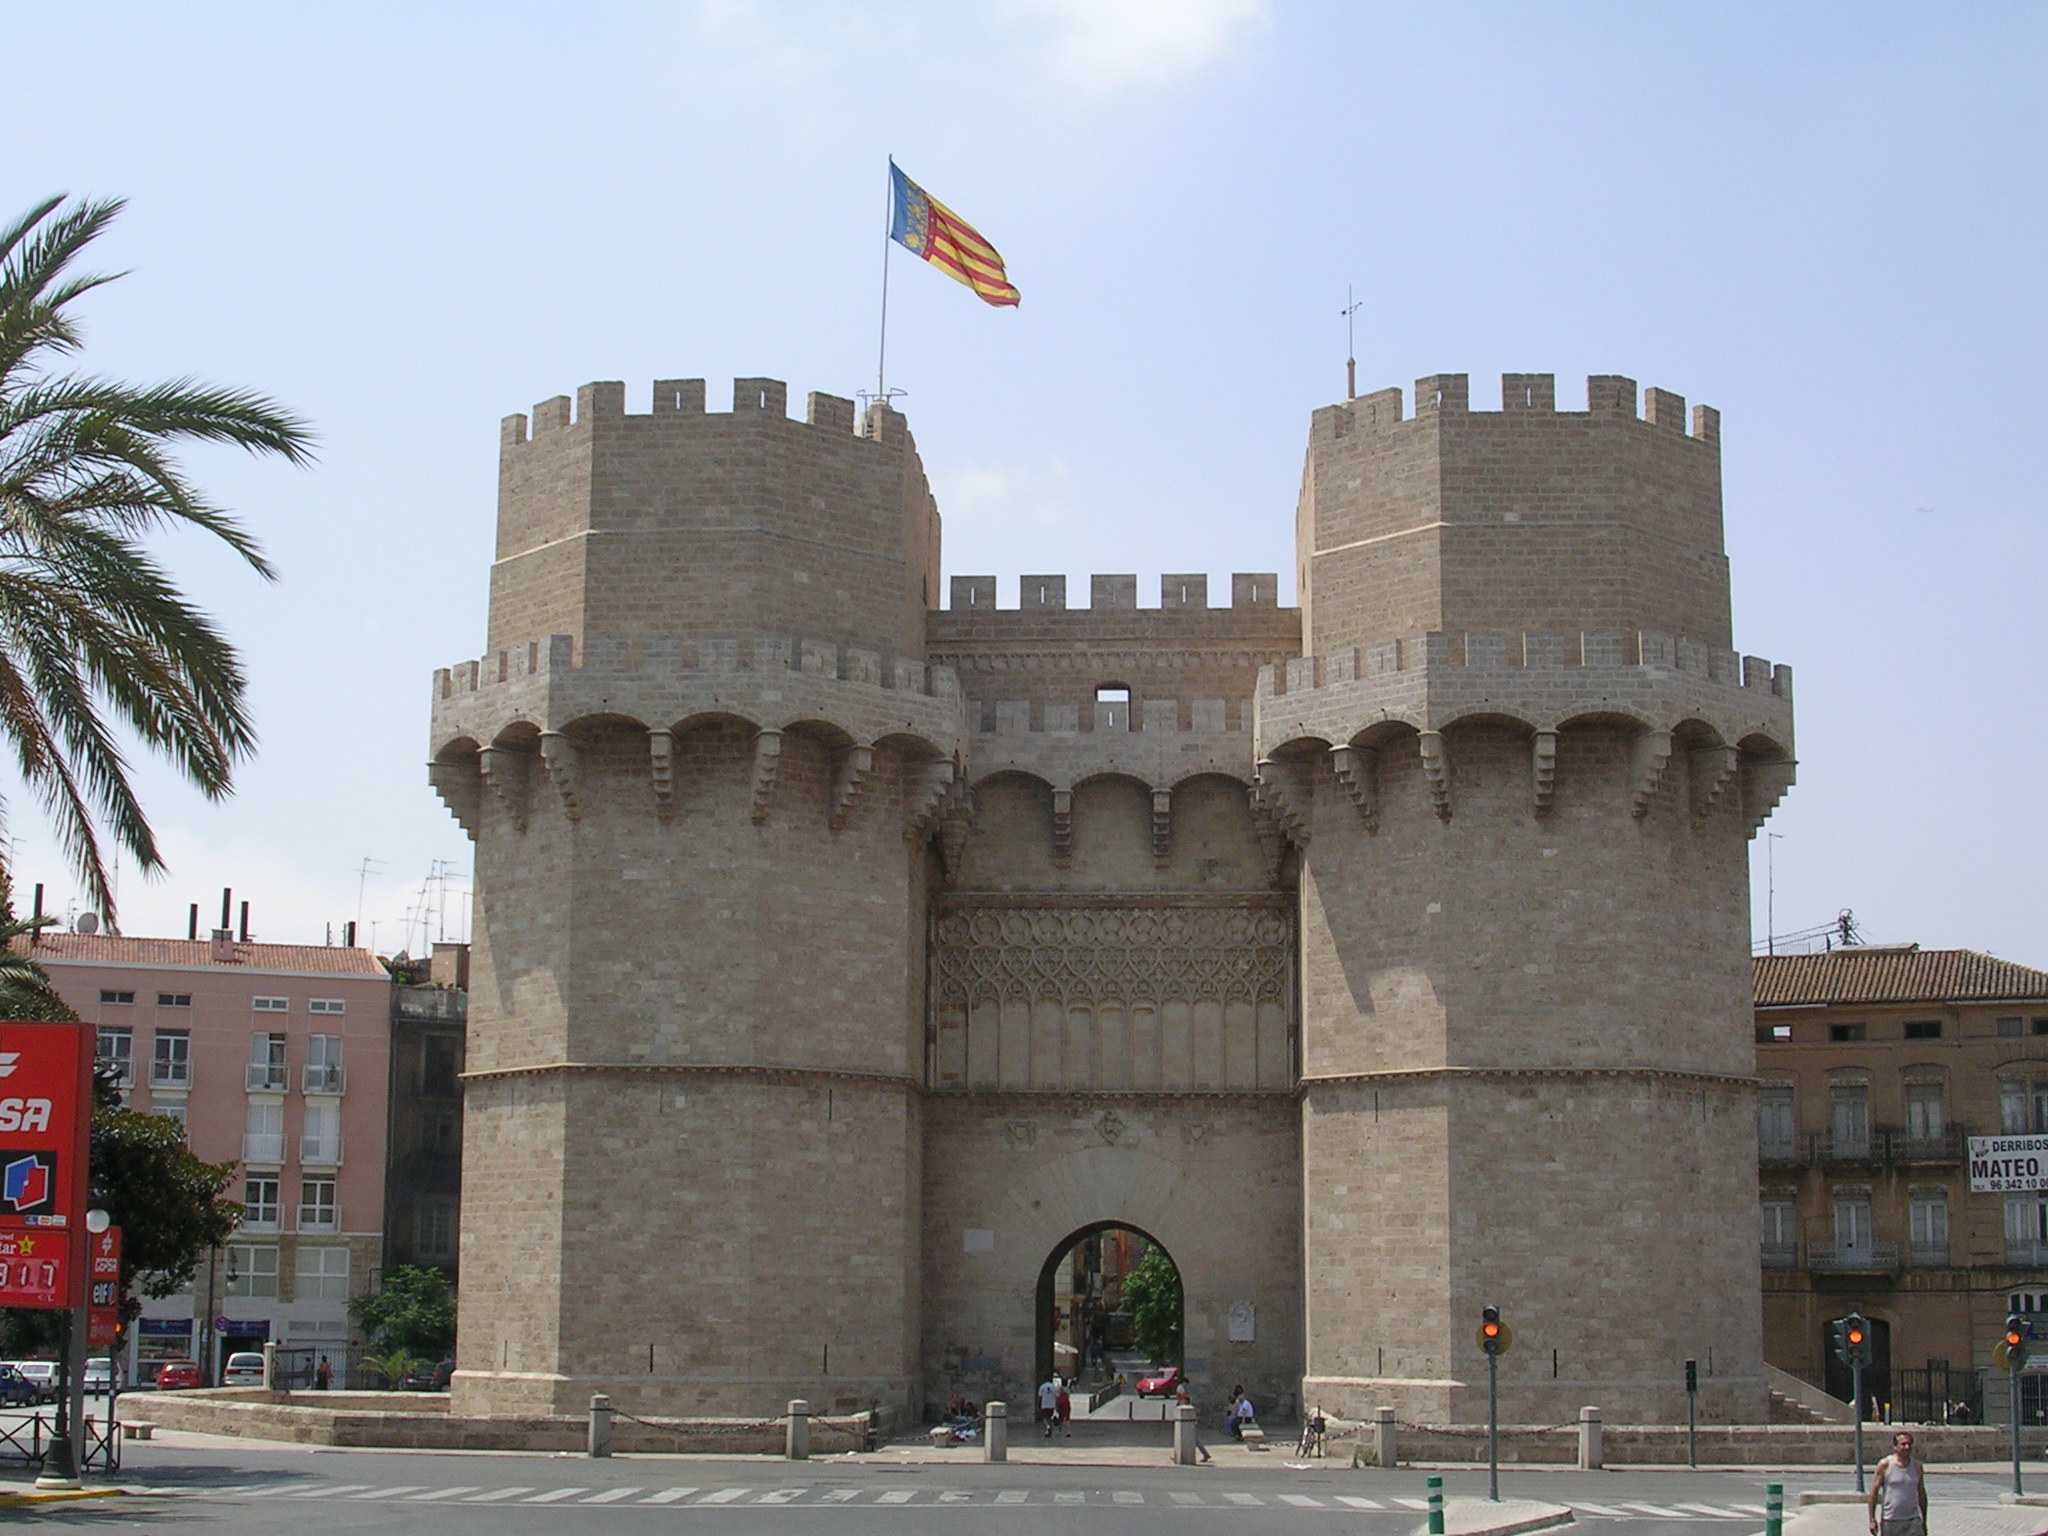 October 9th: Valencian Community Day Celebrations